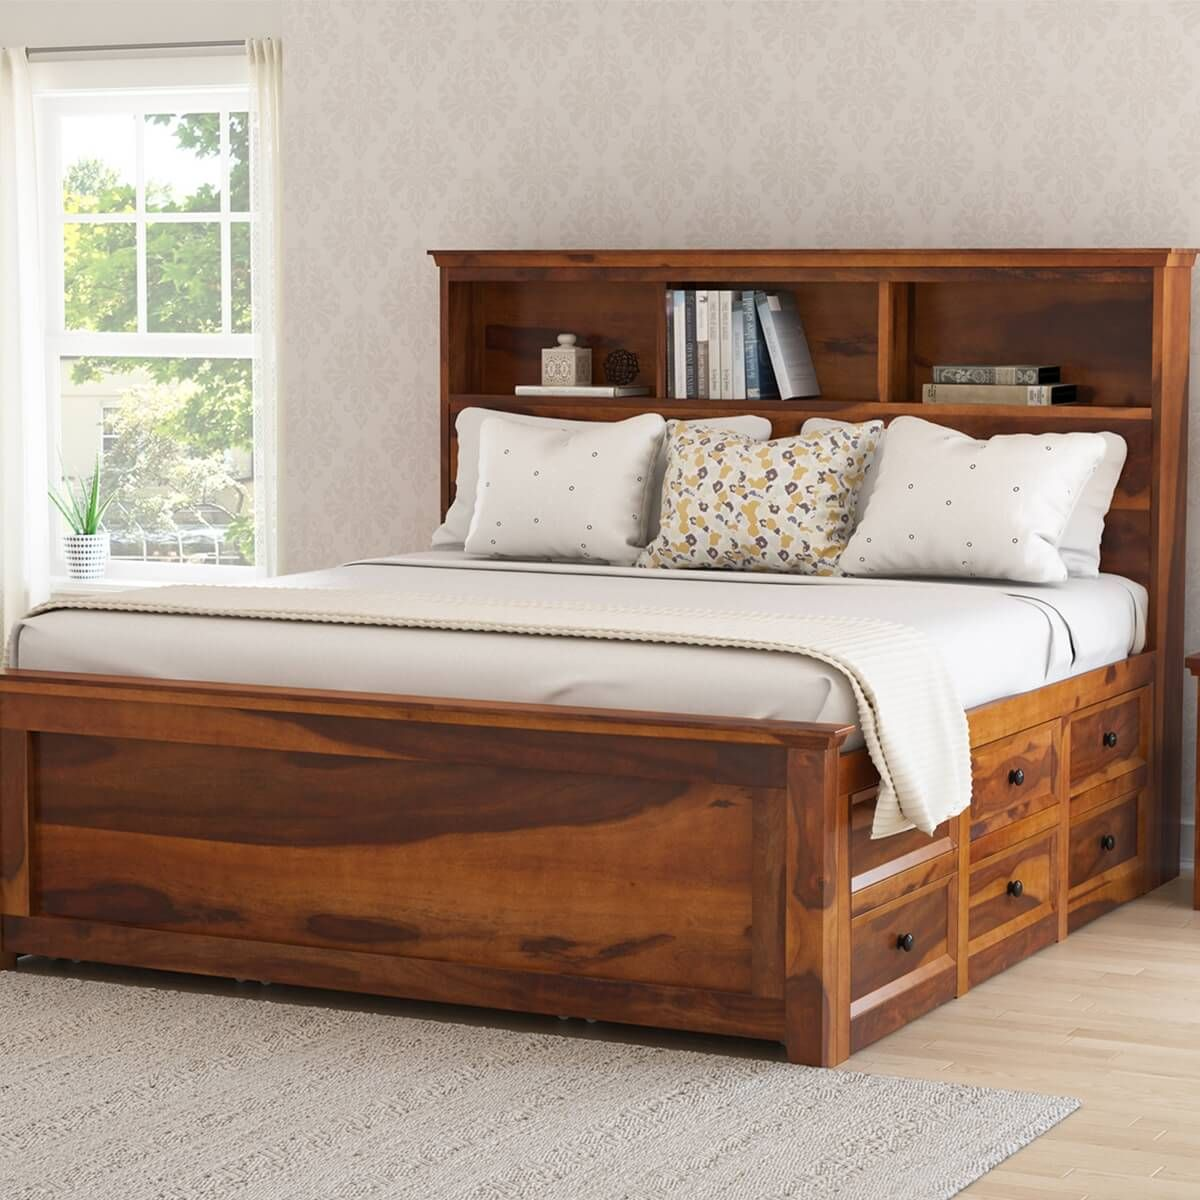 16 Comfortable Full Wood Storage Bed In Bedroom Design Ideas Bed